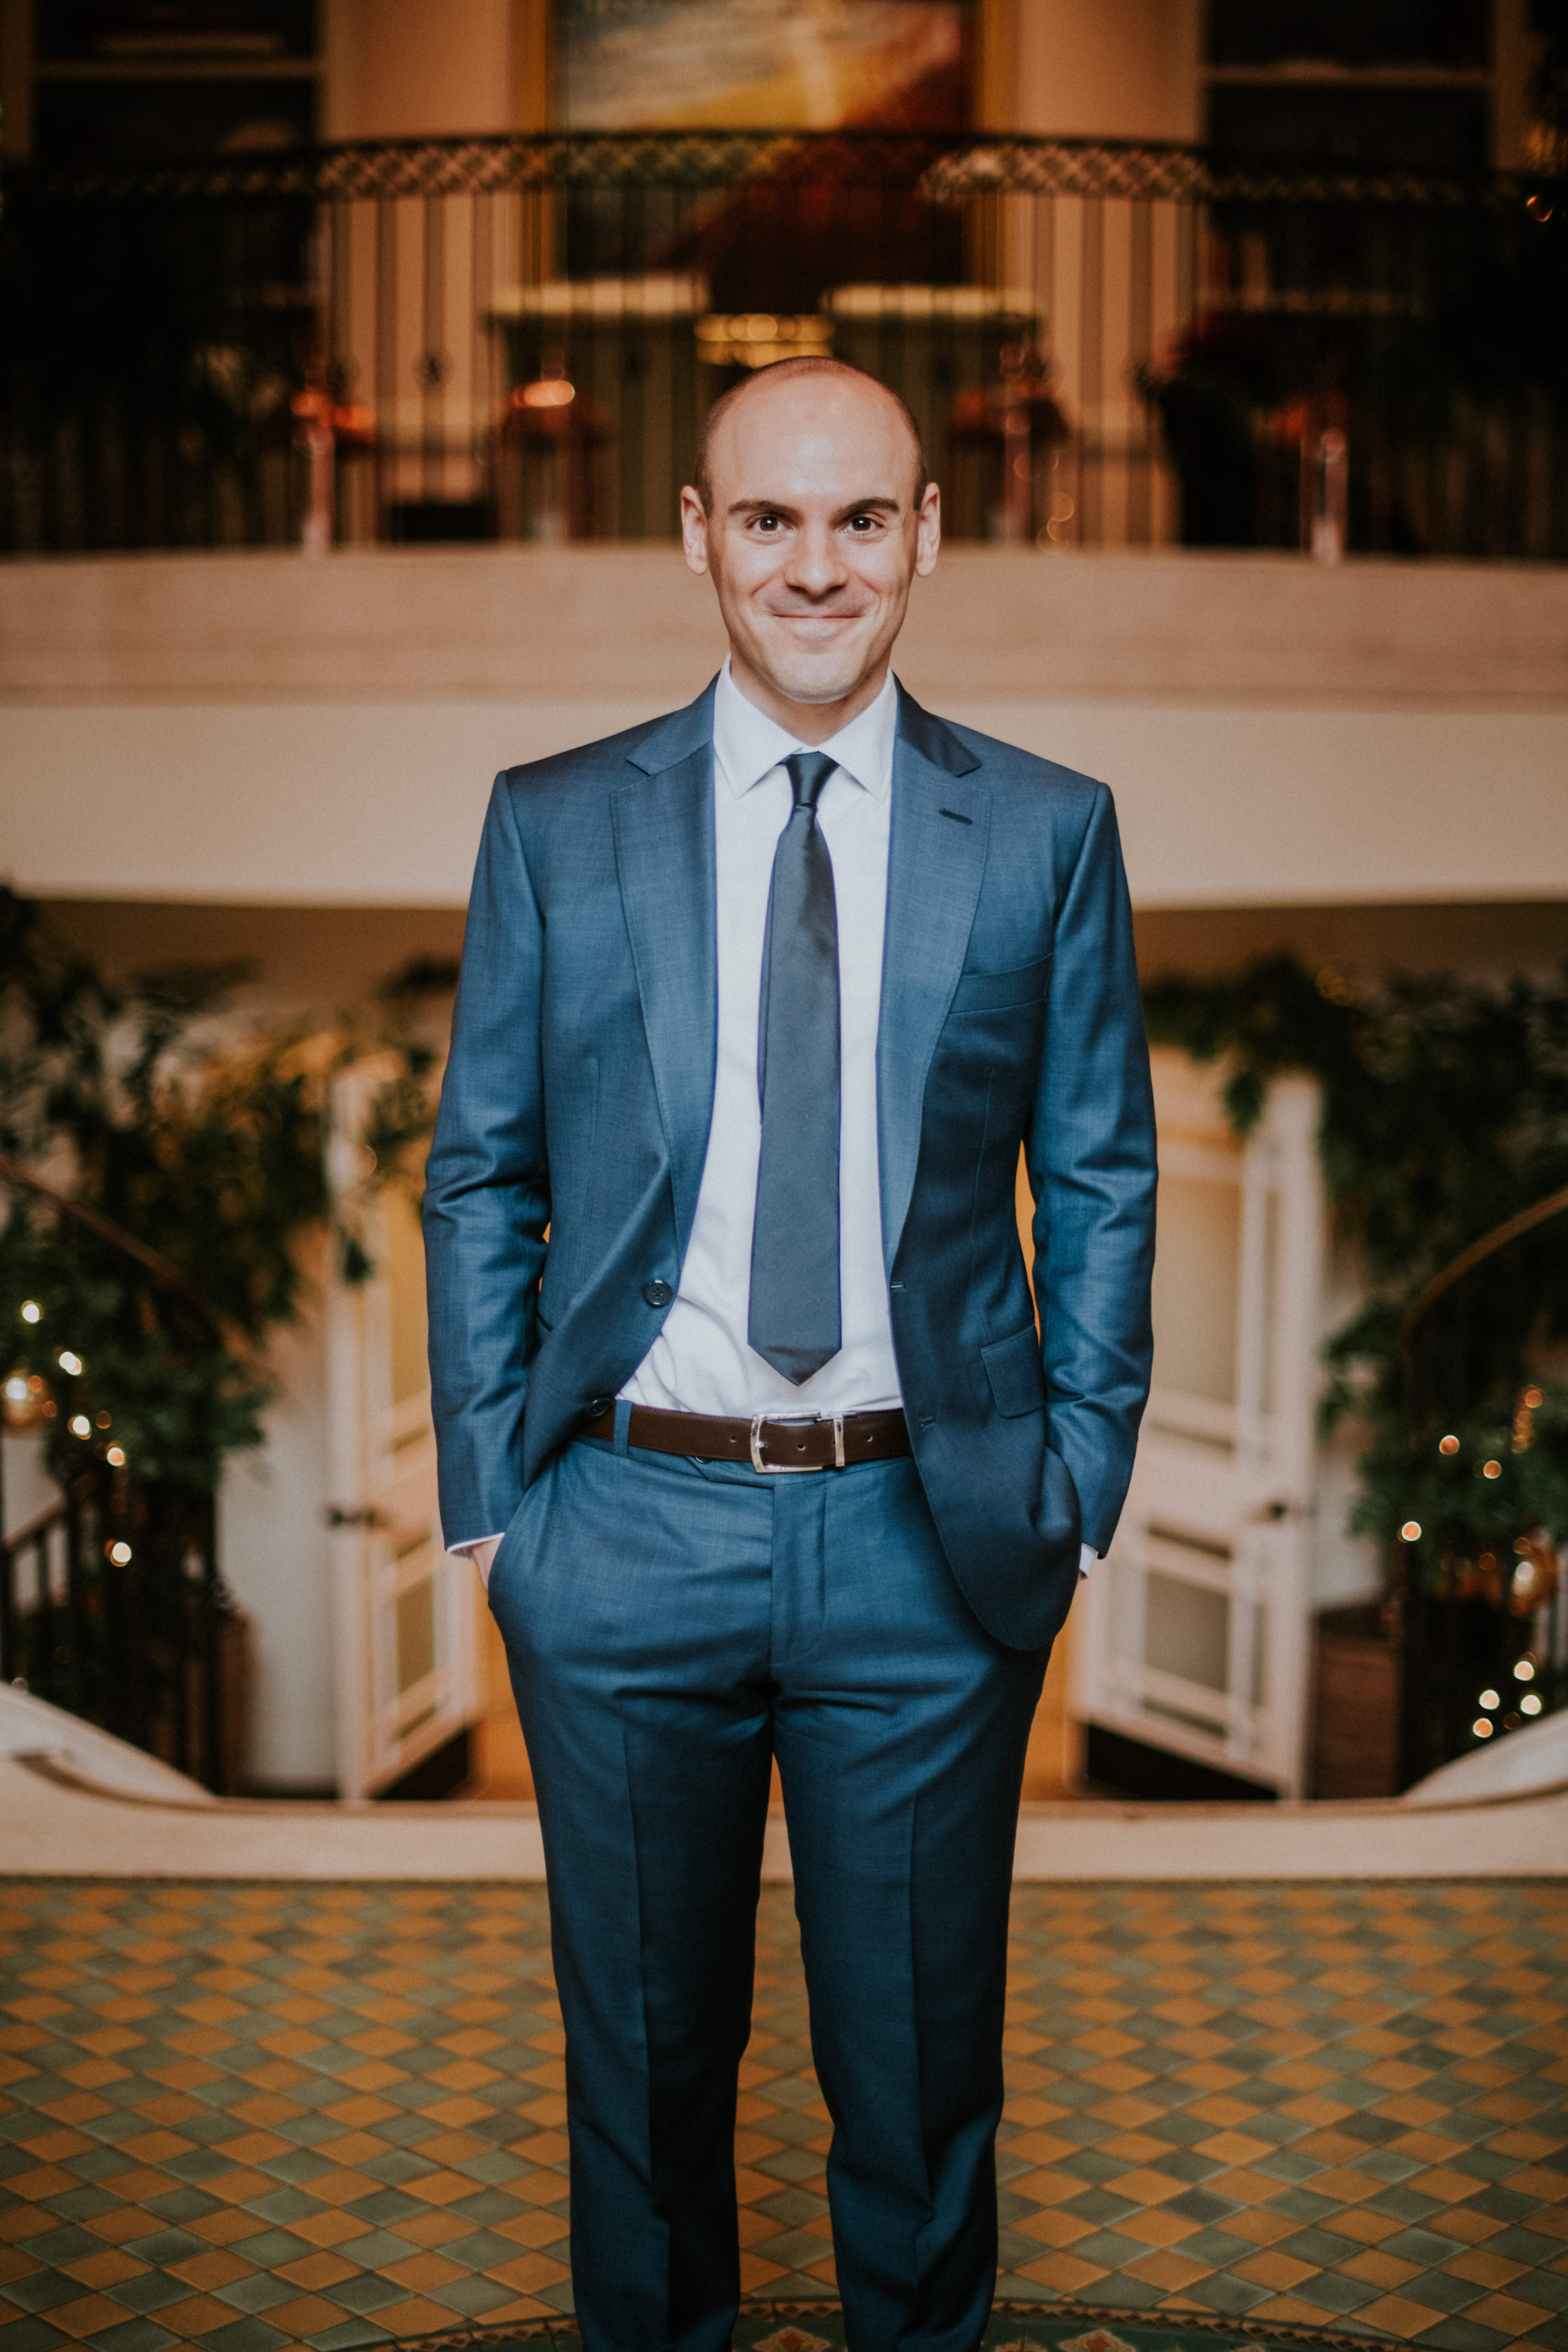 groom posed in blue suit on wedding day photography california wedding hotel casa del mar